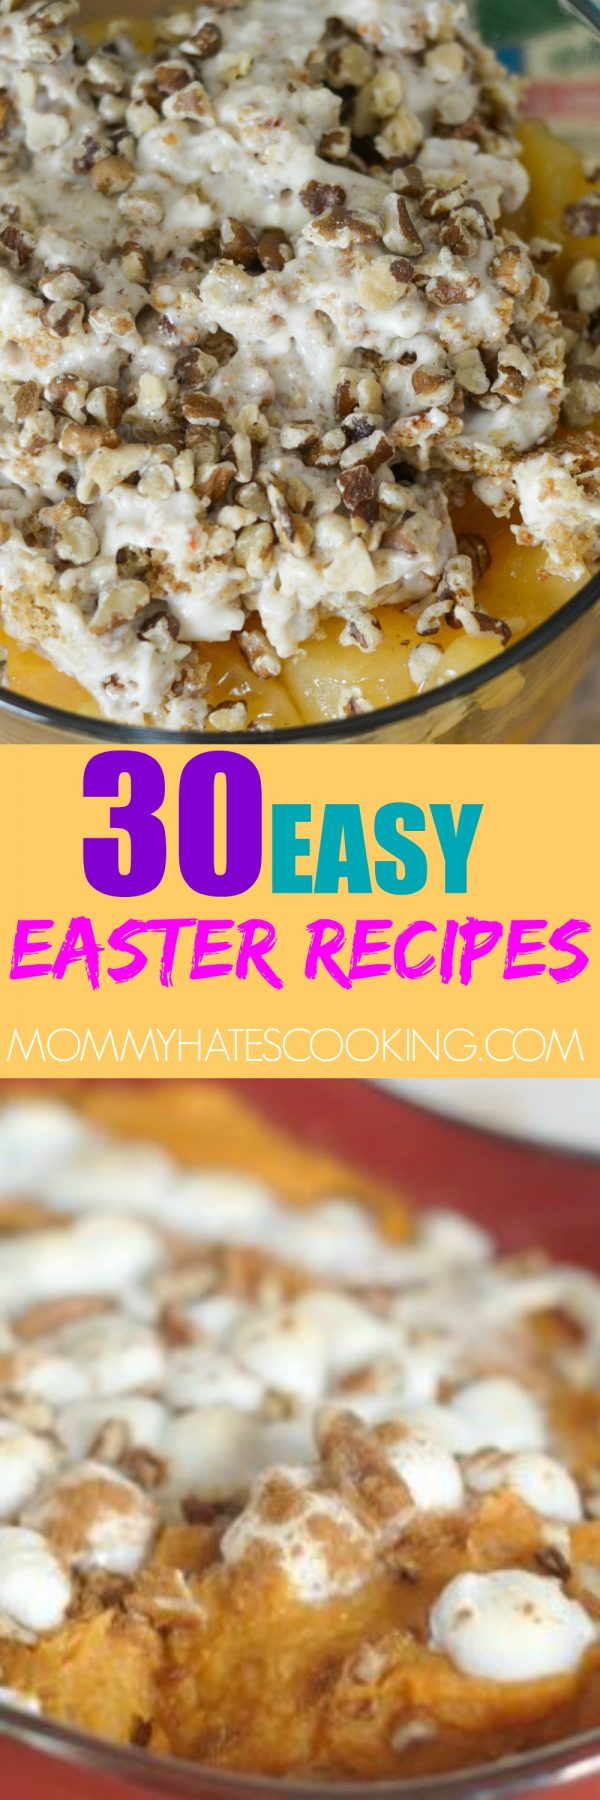 30 EASY EASTER RECIPES